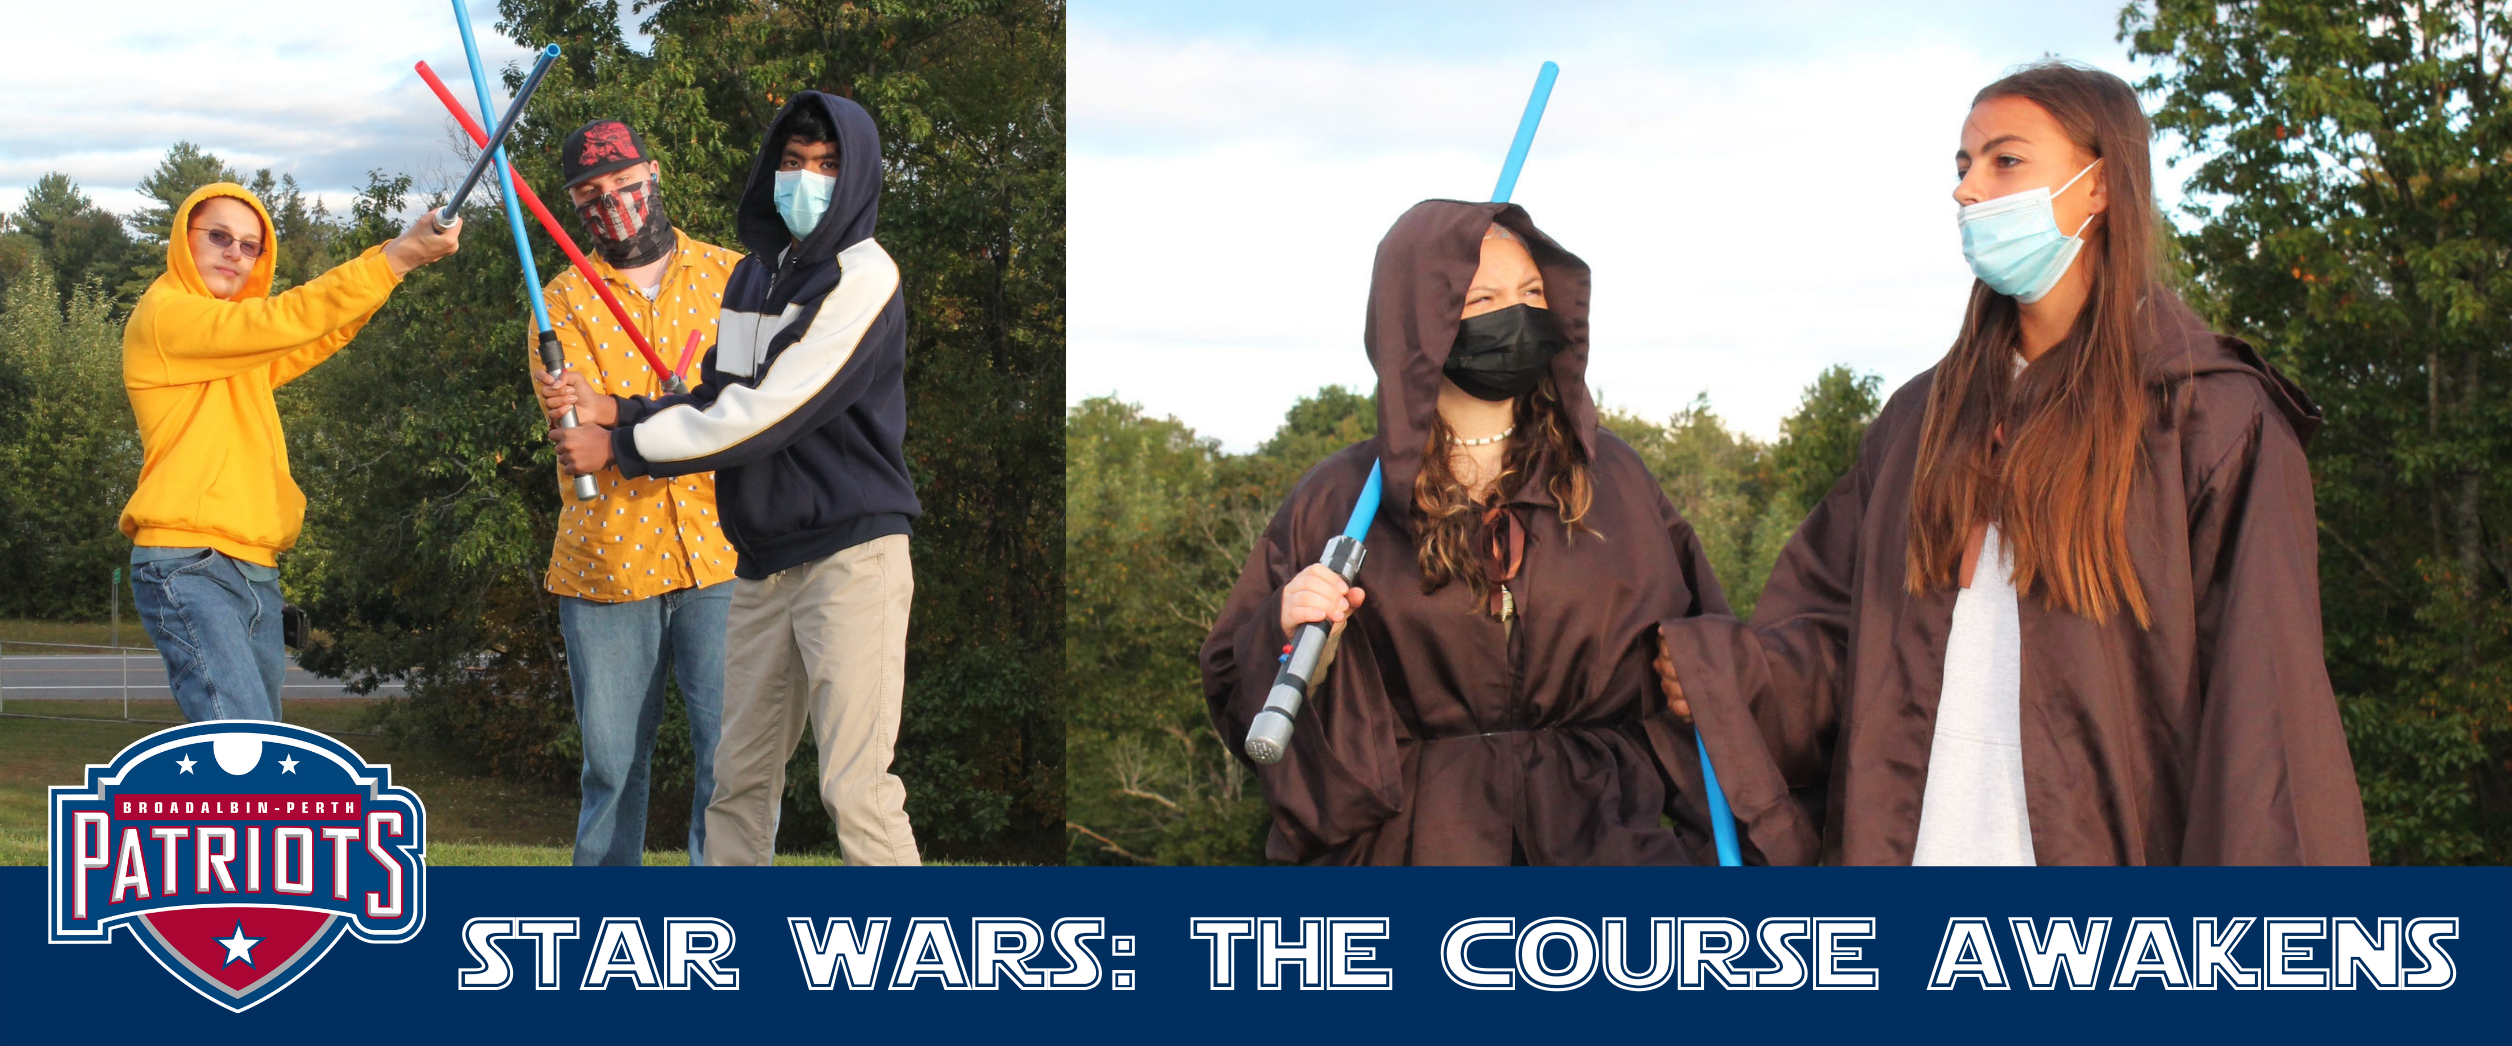 """a montage of two photos shows three young men holding up light sabres and two young women wearing brown capes, with the words """"Star Wars"""" The Course Awakens"""" at the bottom"""